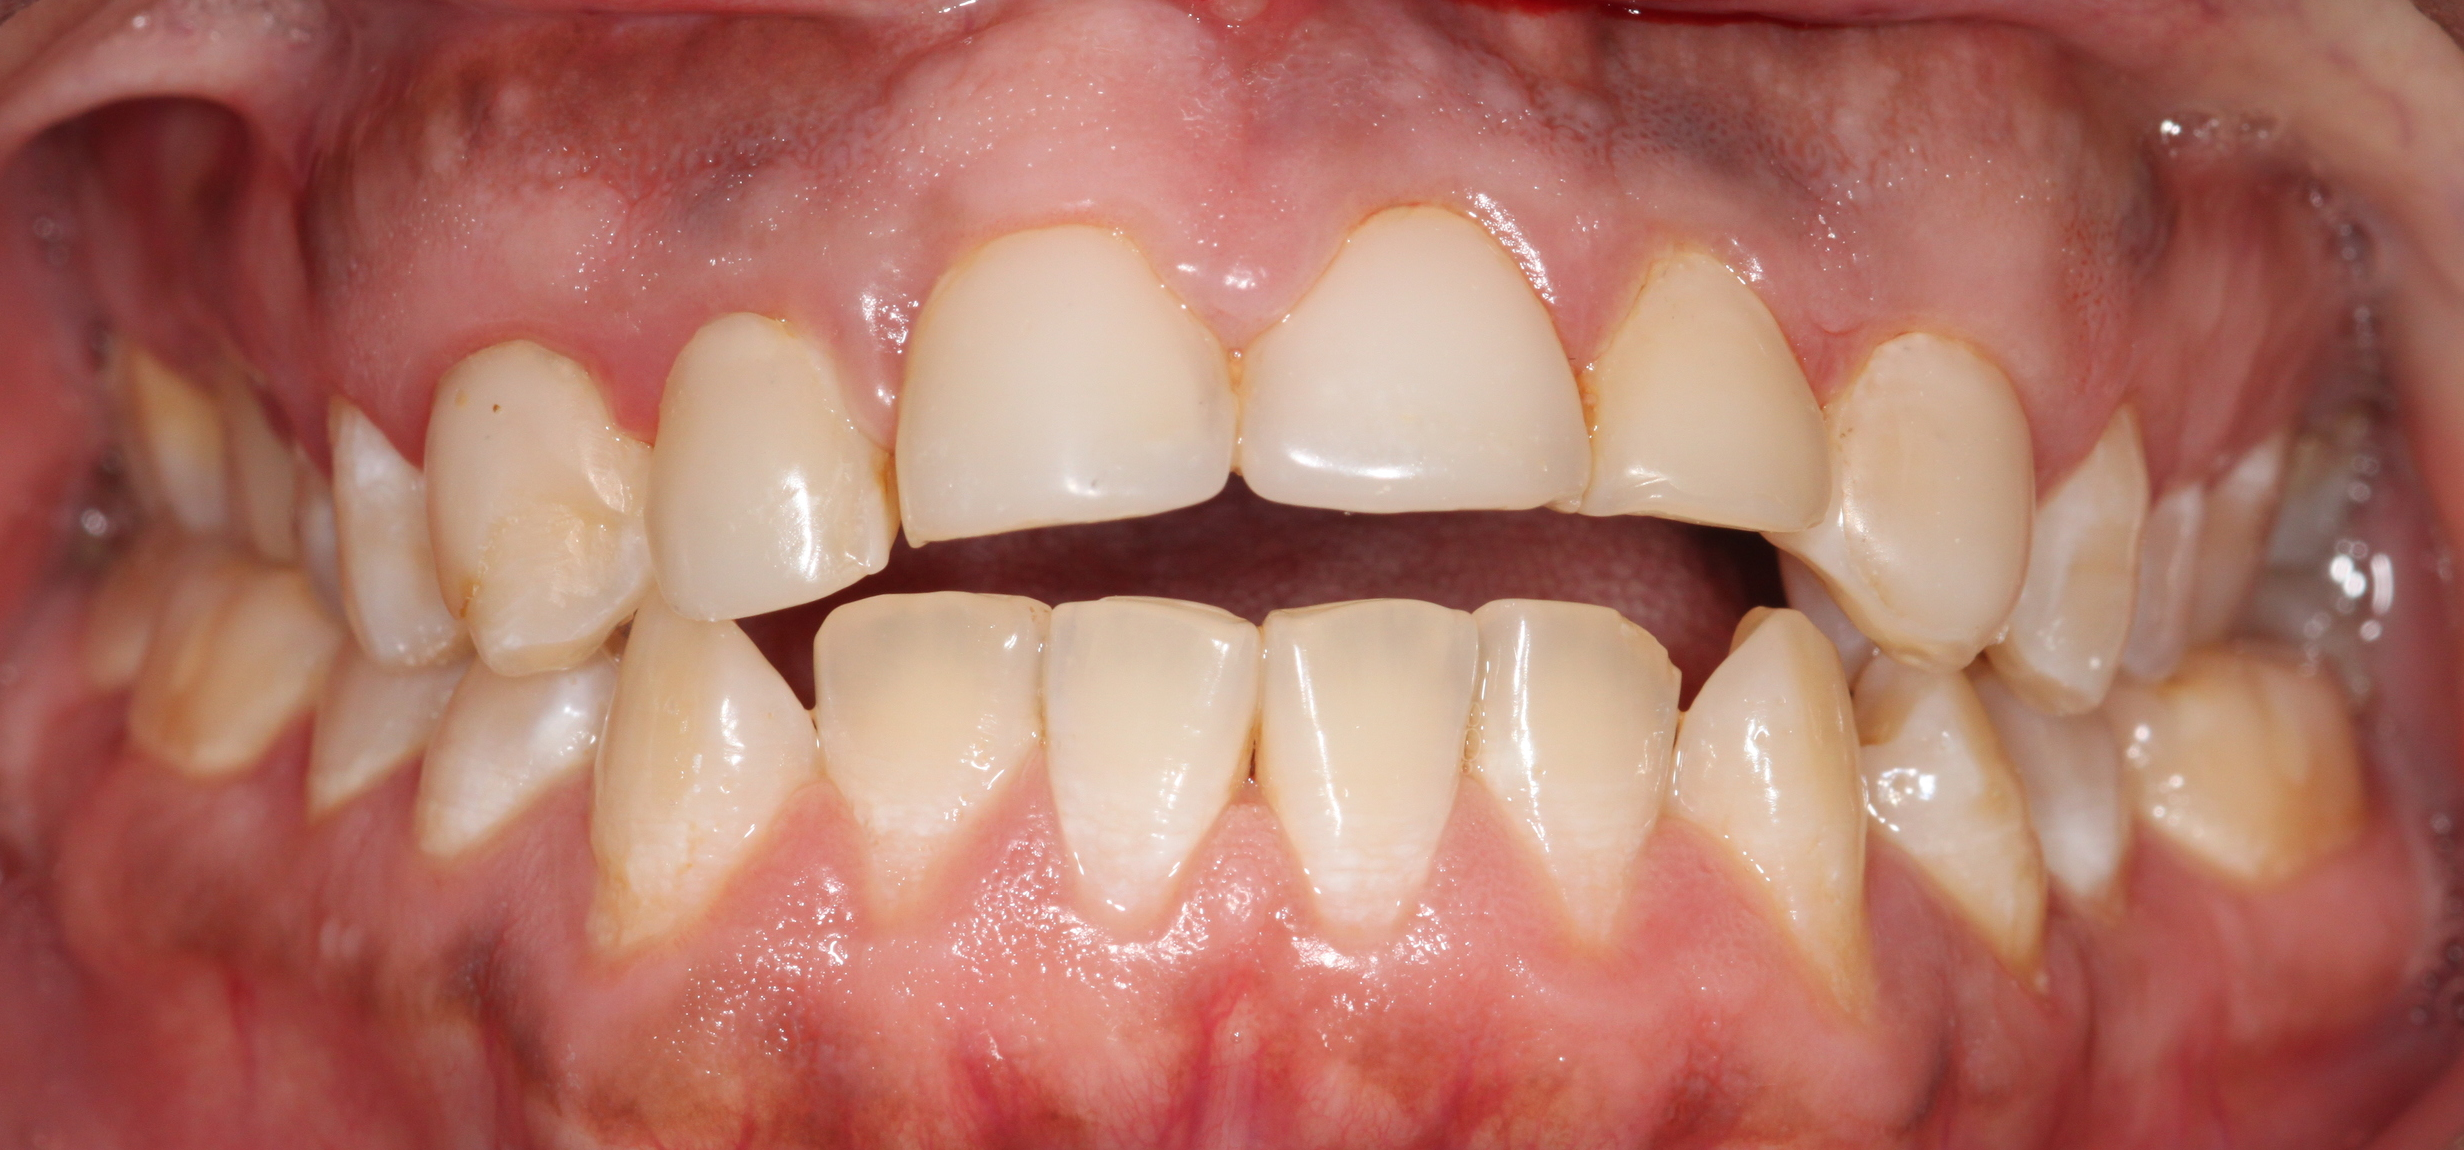 "BEFORE:   Patient 7 has several multiple composite veneers (large white fillings making up the entire front of the tooth) and fillings that are stained and have cavities existing at the margins. In addition, the patient has an ""open bite"", which means that the front teeth do not close together even with the back teeth biting together."